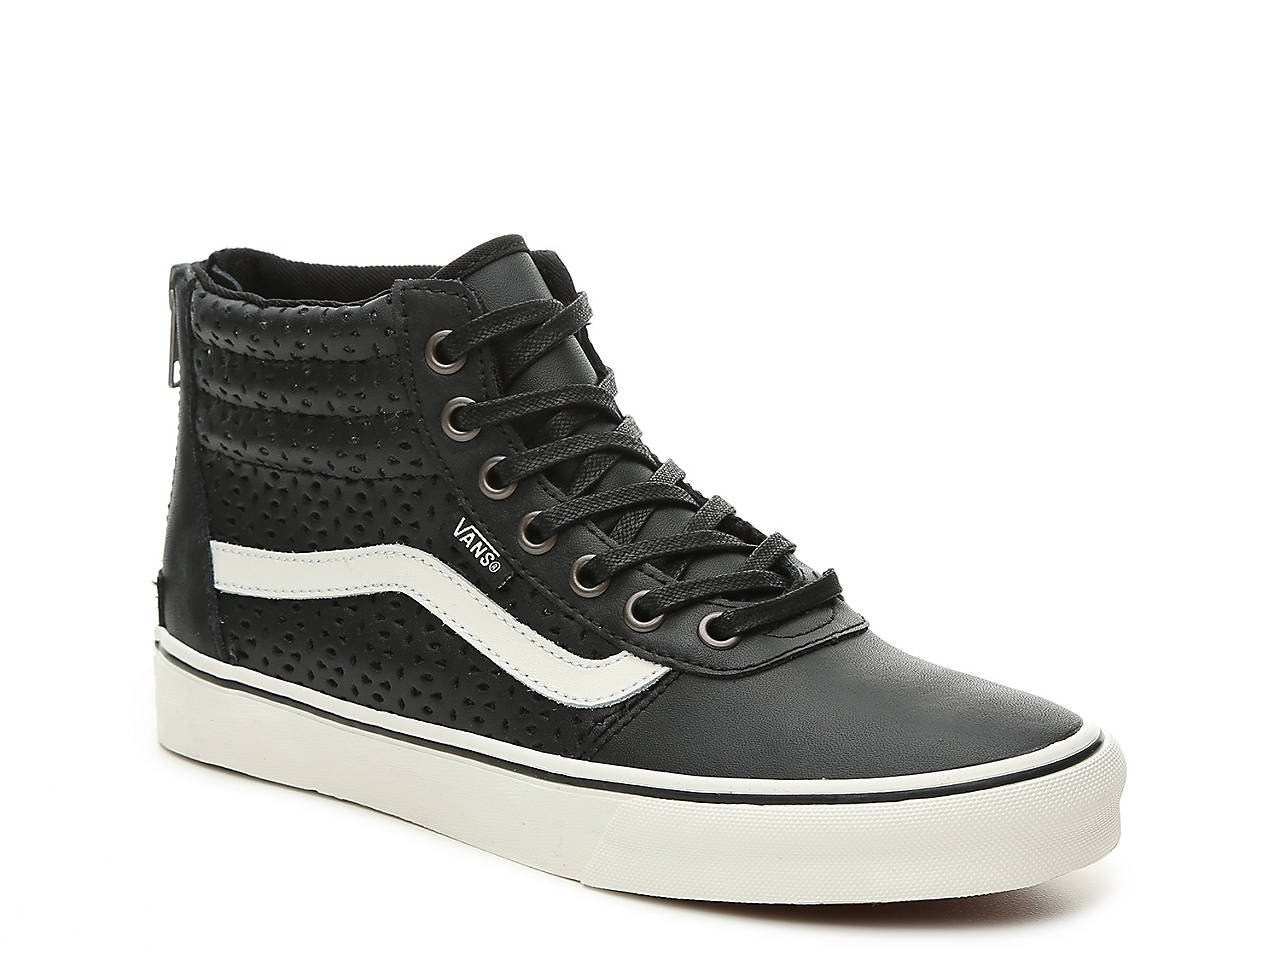 Vans Milton Mens High Top Skate Shoes